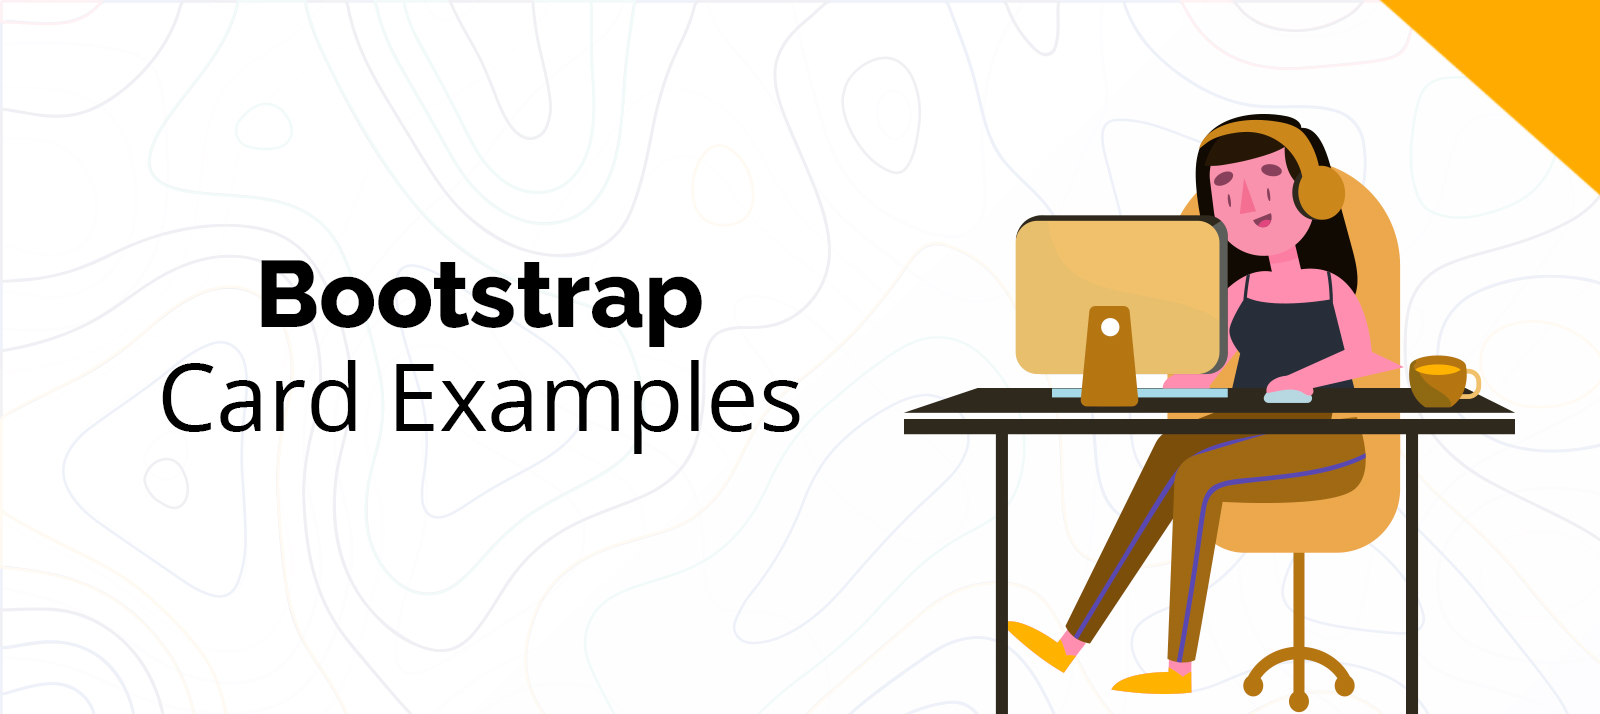 10 Free Bootstrap Card Examples To Guarantee a Better User Experience